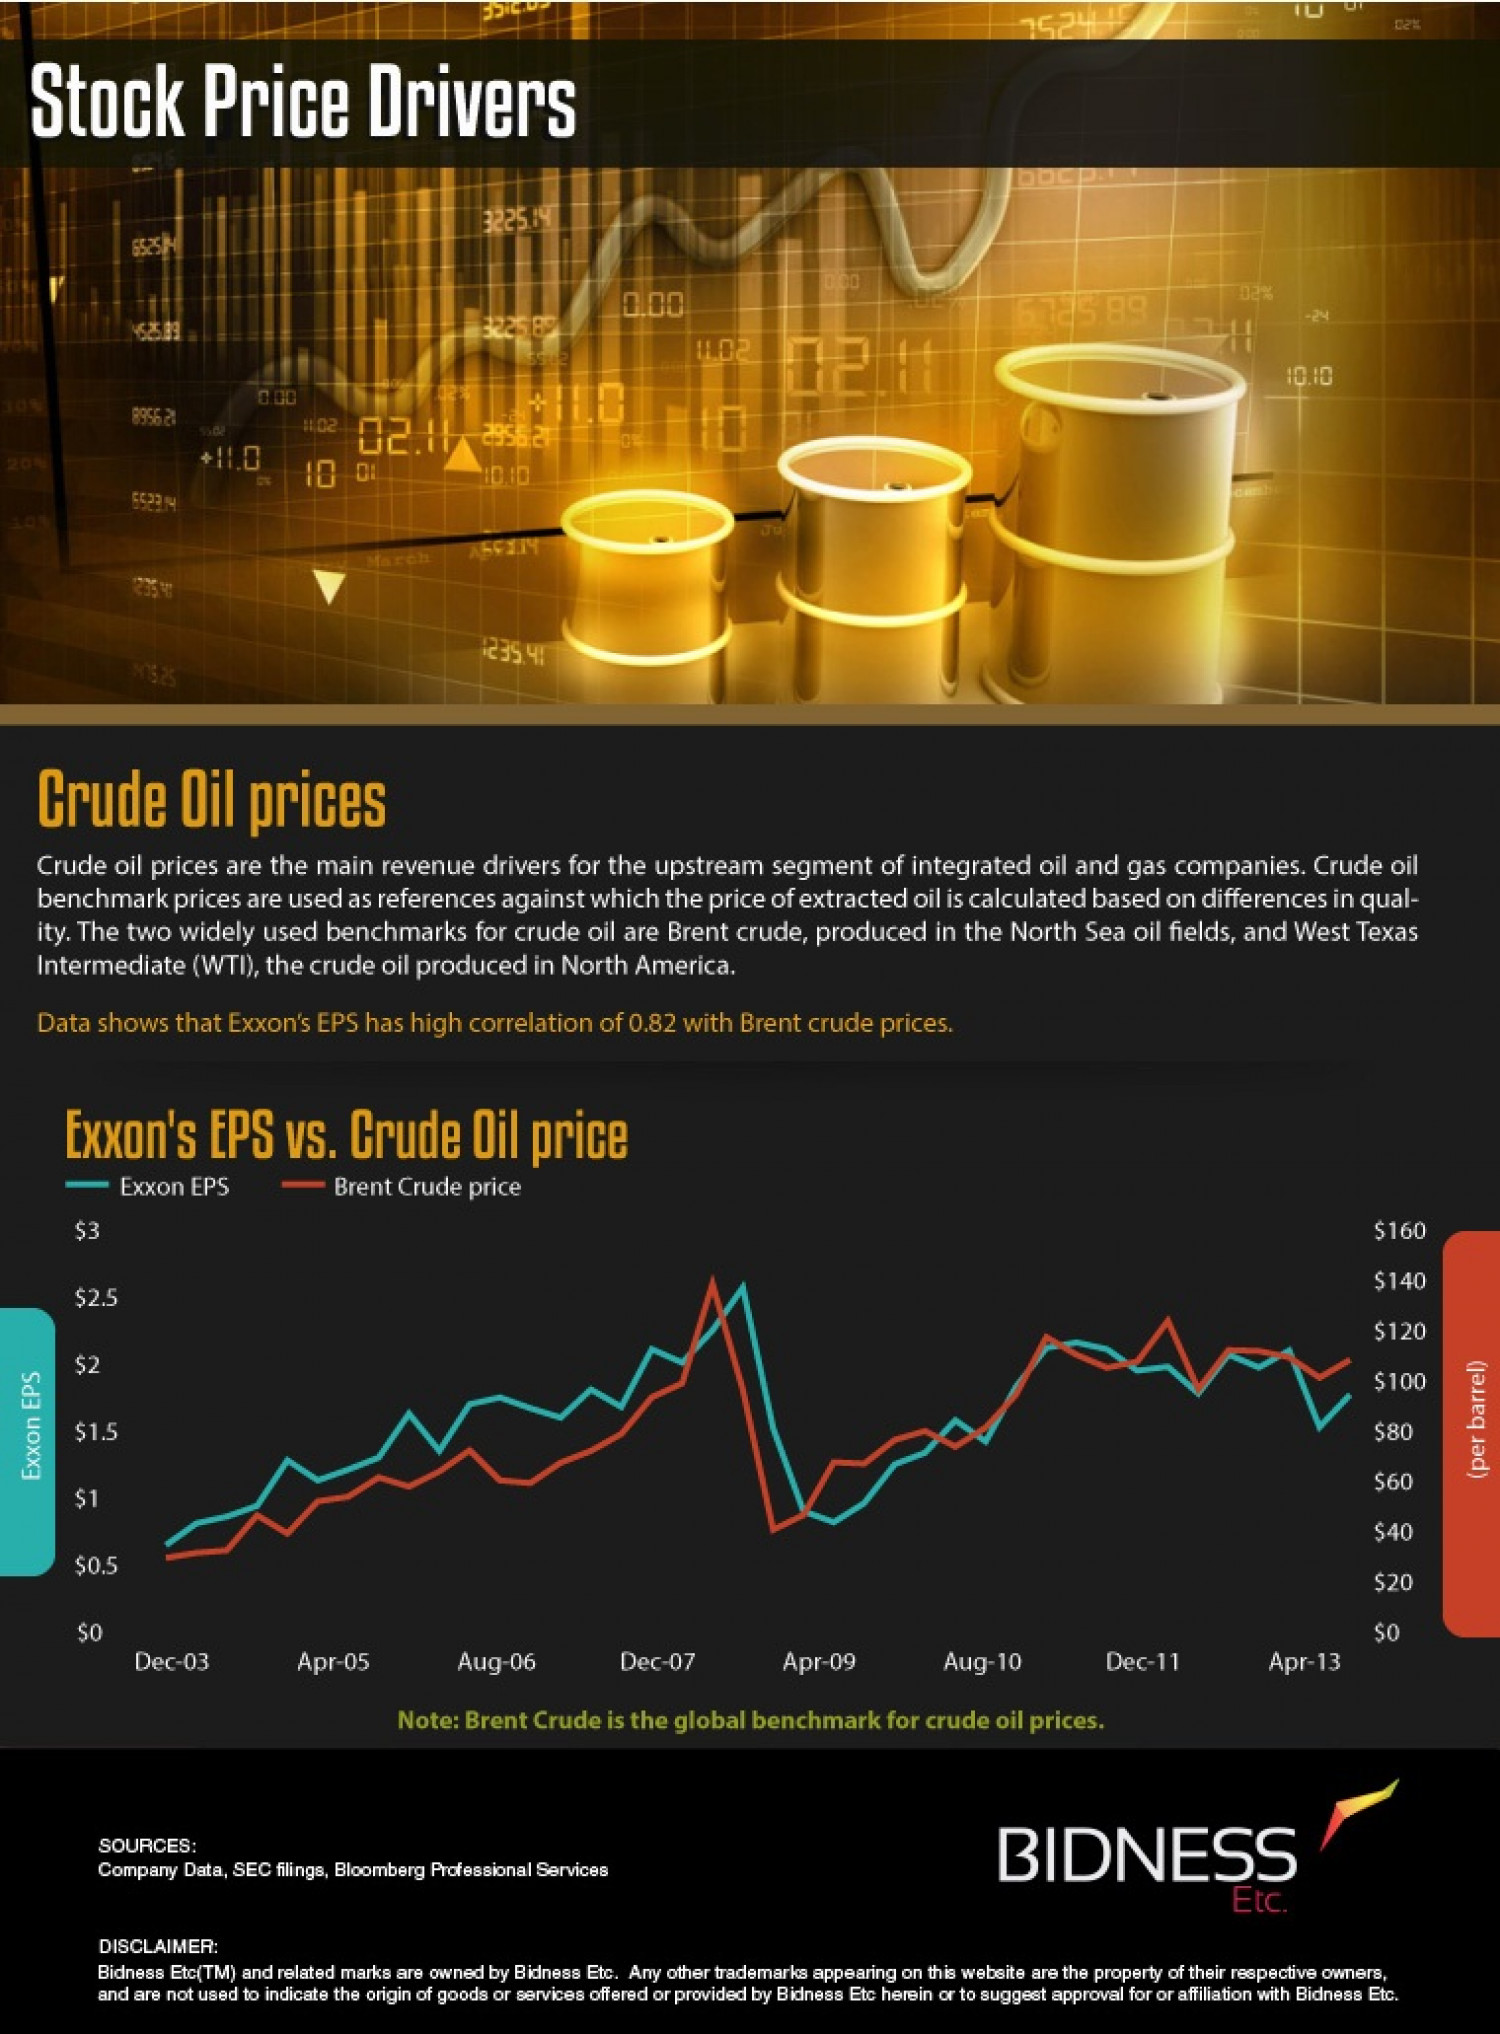 Exxon Mobil (XOM) Stock Price Drivers Infographic